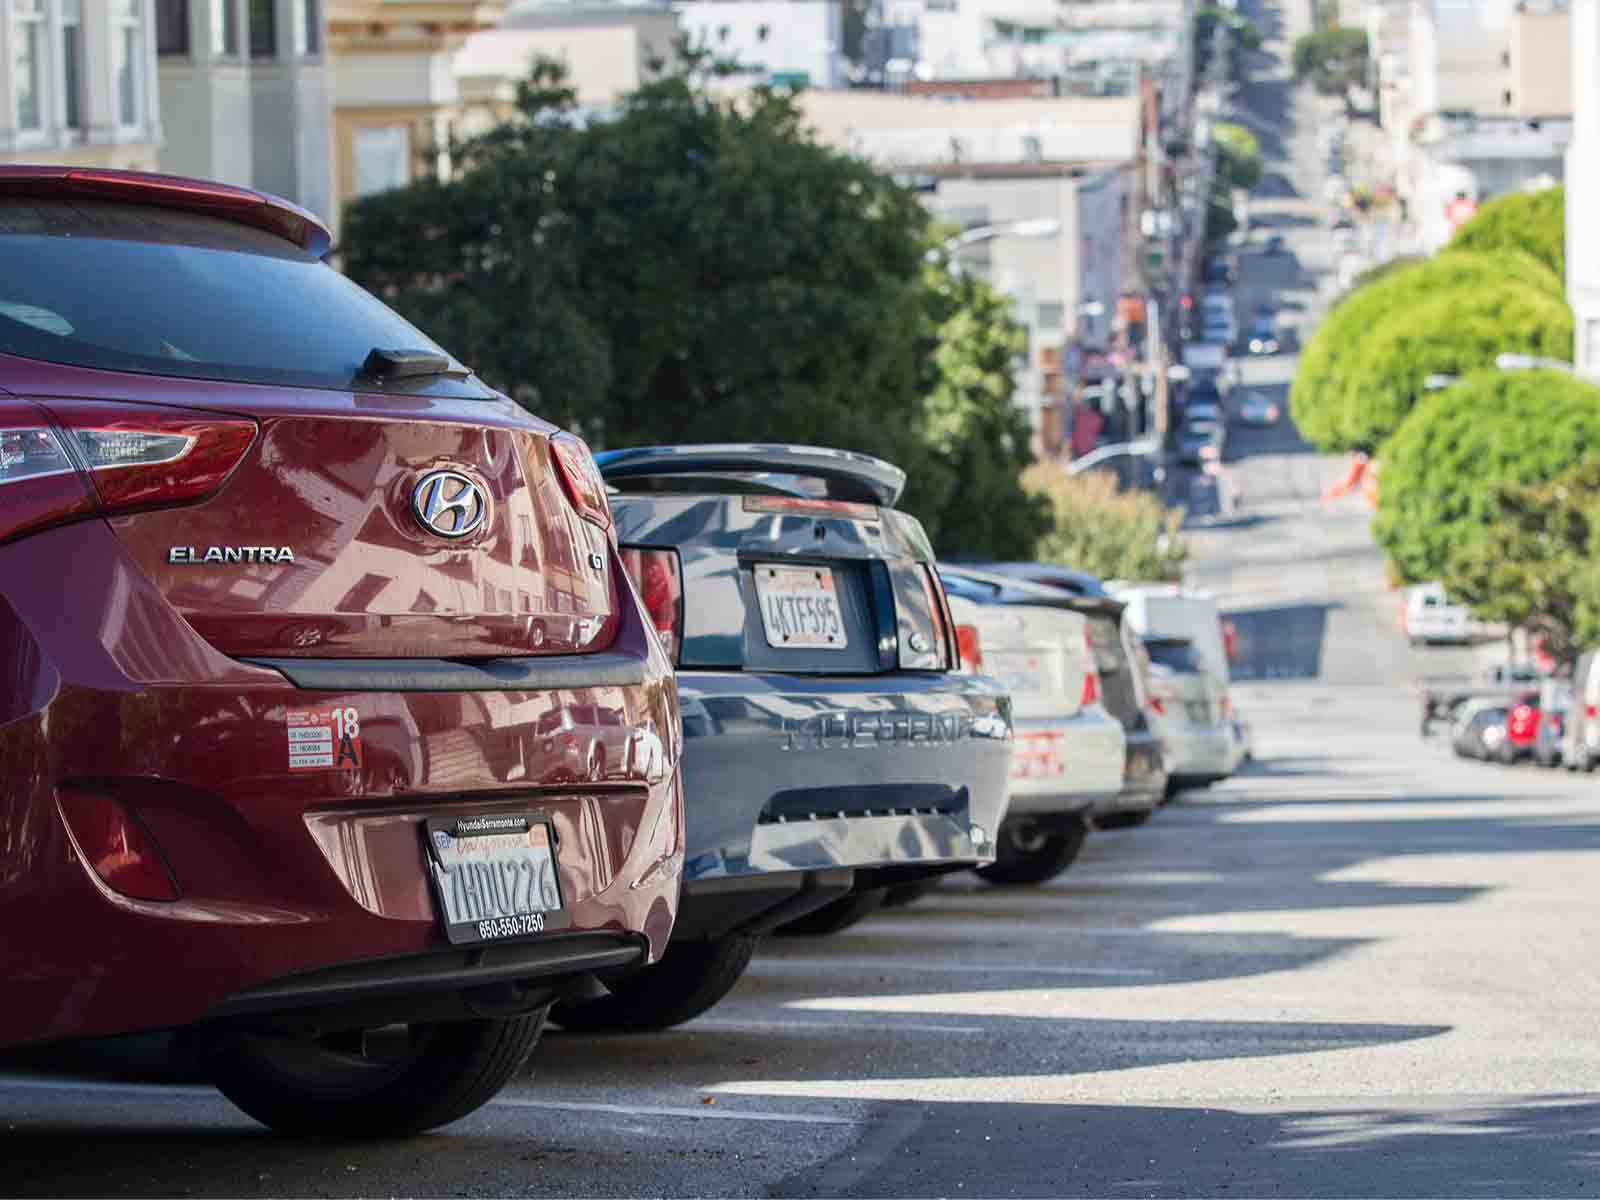 The SFMTA may further limit the number of residential parking permits a household can obtain. The restrictions would first be part of a pilot program in northwest Bernal Heights and the Dogpatch. (Daniel Kim/Special to S.F. Examiner)